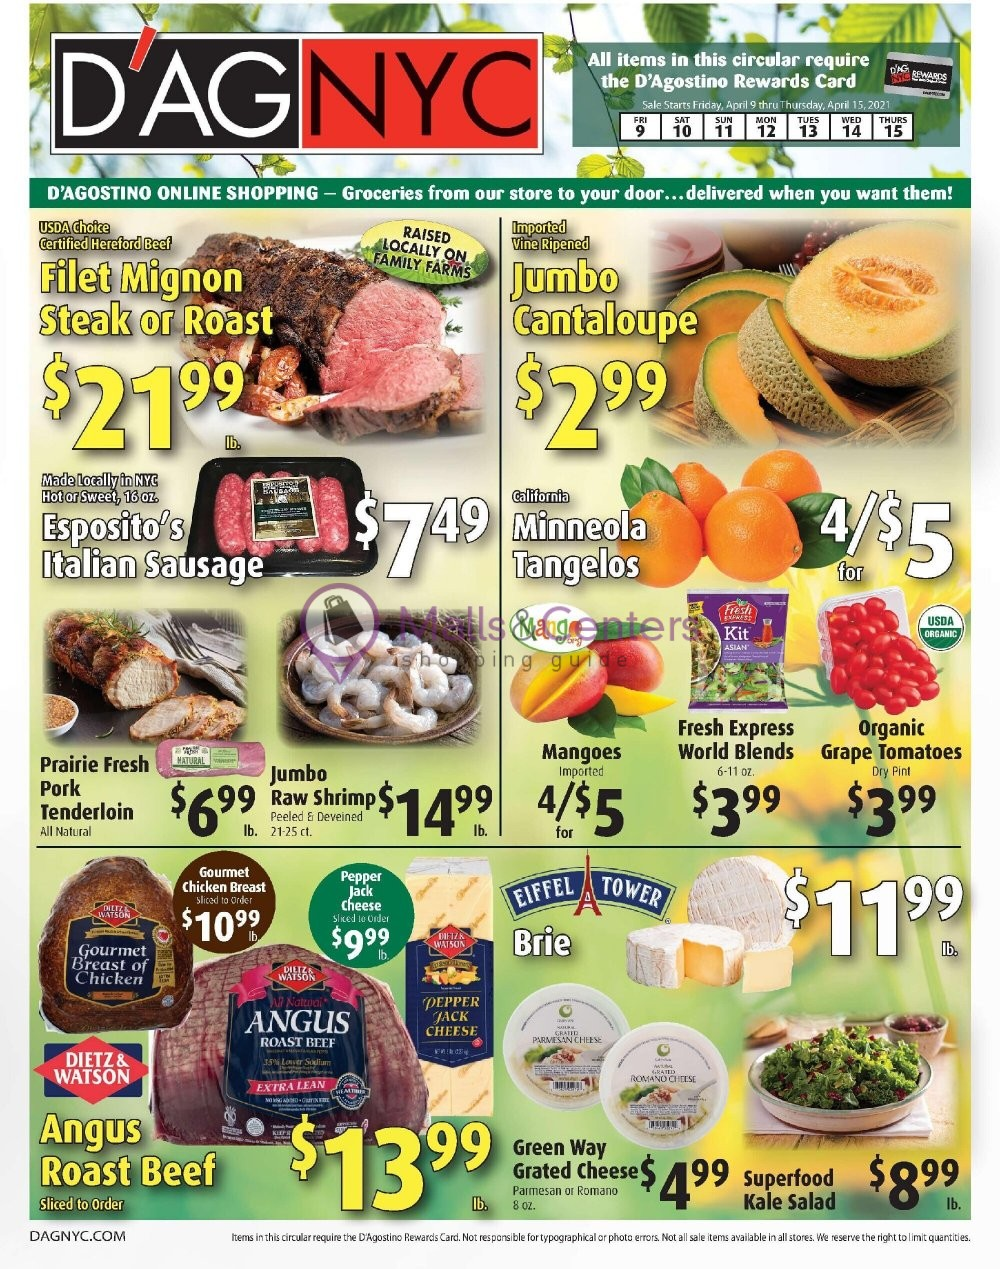 weekly ad D'Agostino - page 1 - mallscenters.com